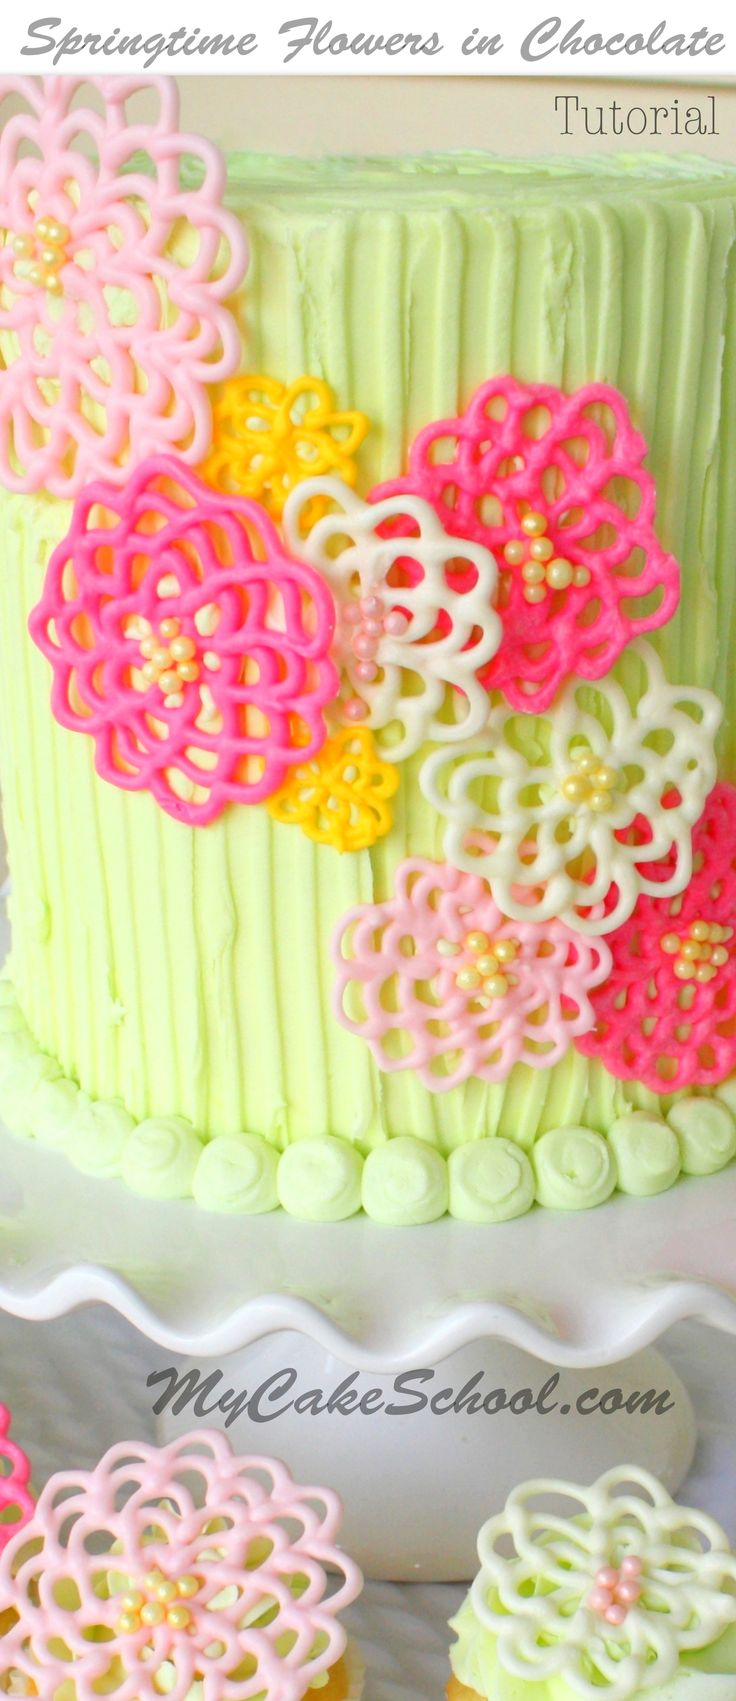 Cake Decorating Classes Dc : 25+ best ideas about Chocolate flowers on Pinterest Royal icing decorations, Wilton piping ...